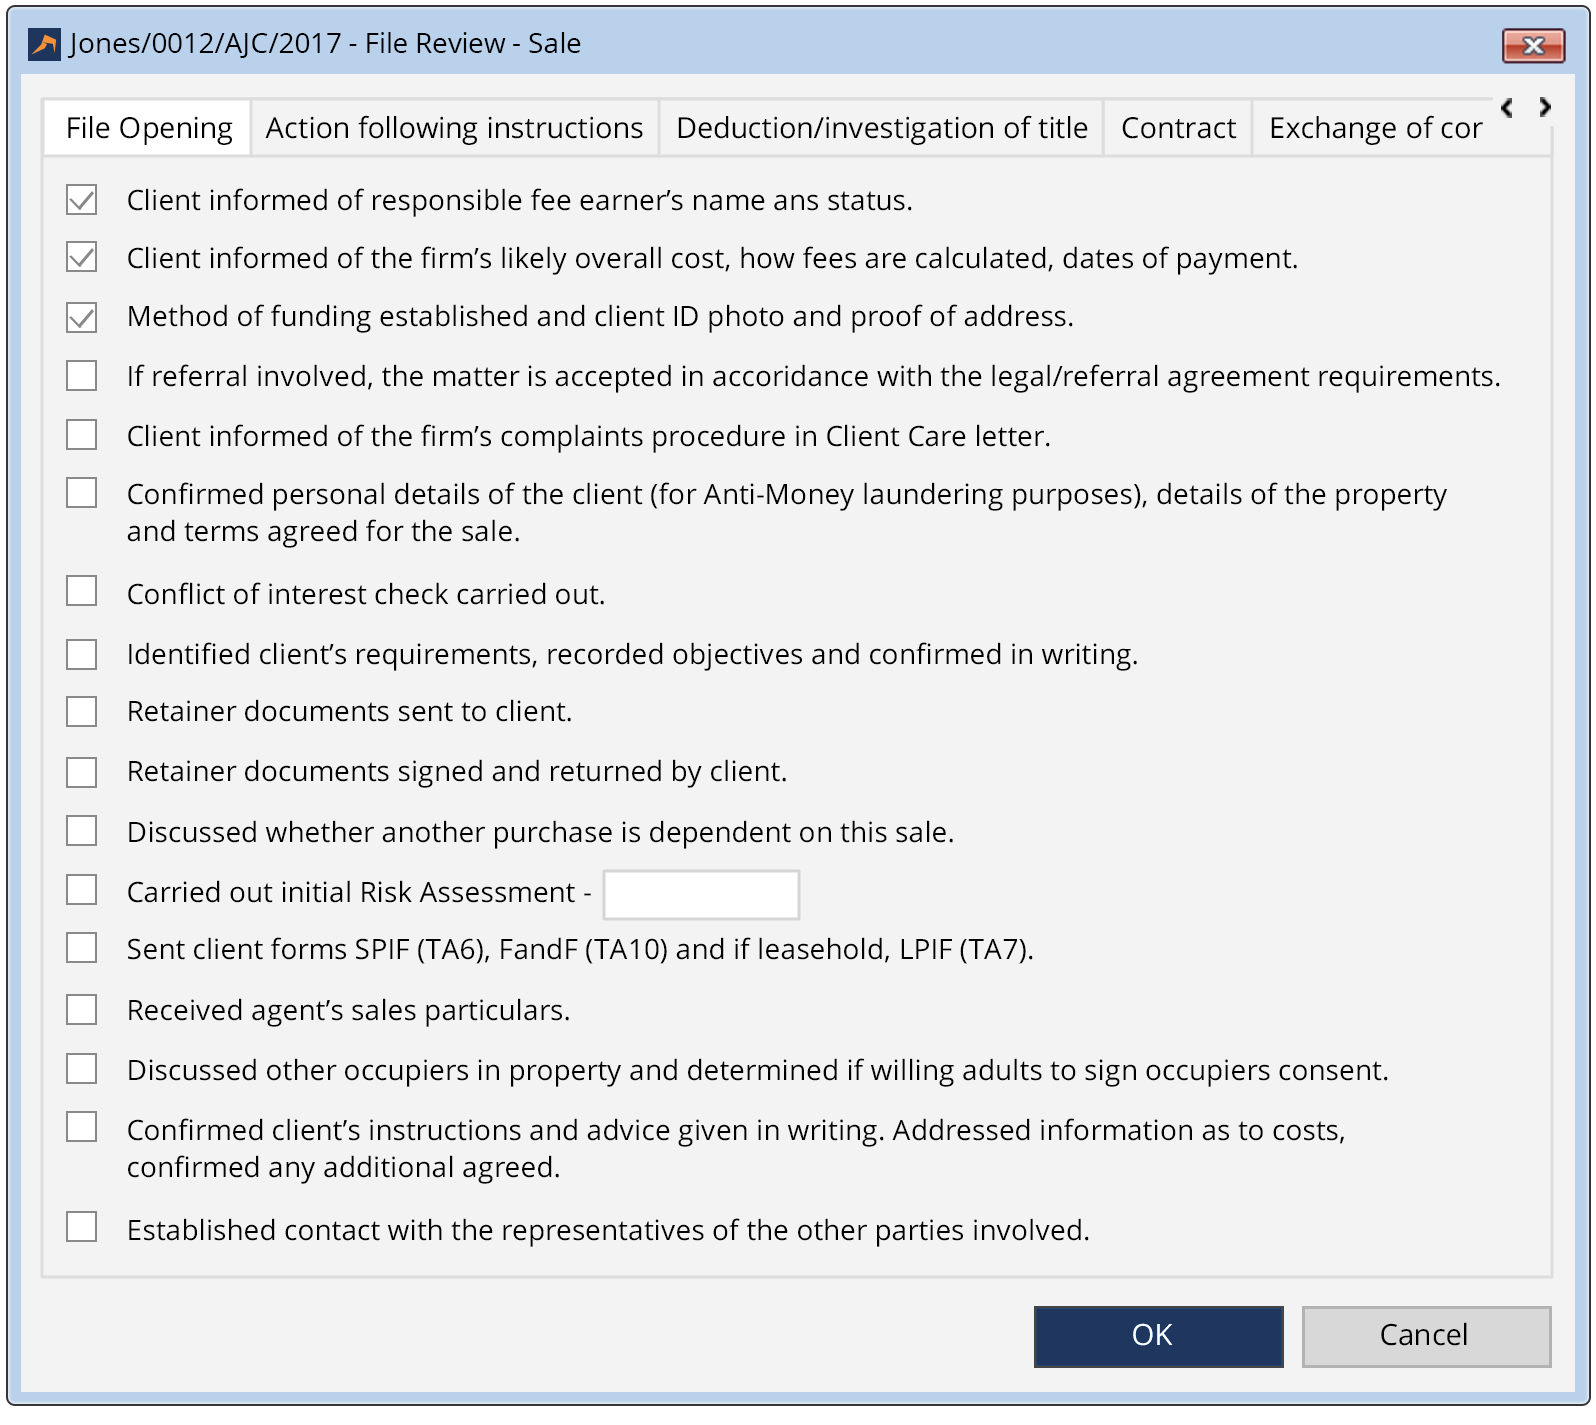 Conveyancing Software Matter Type - LEAP Legal Software